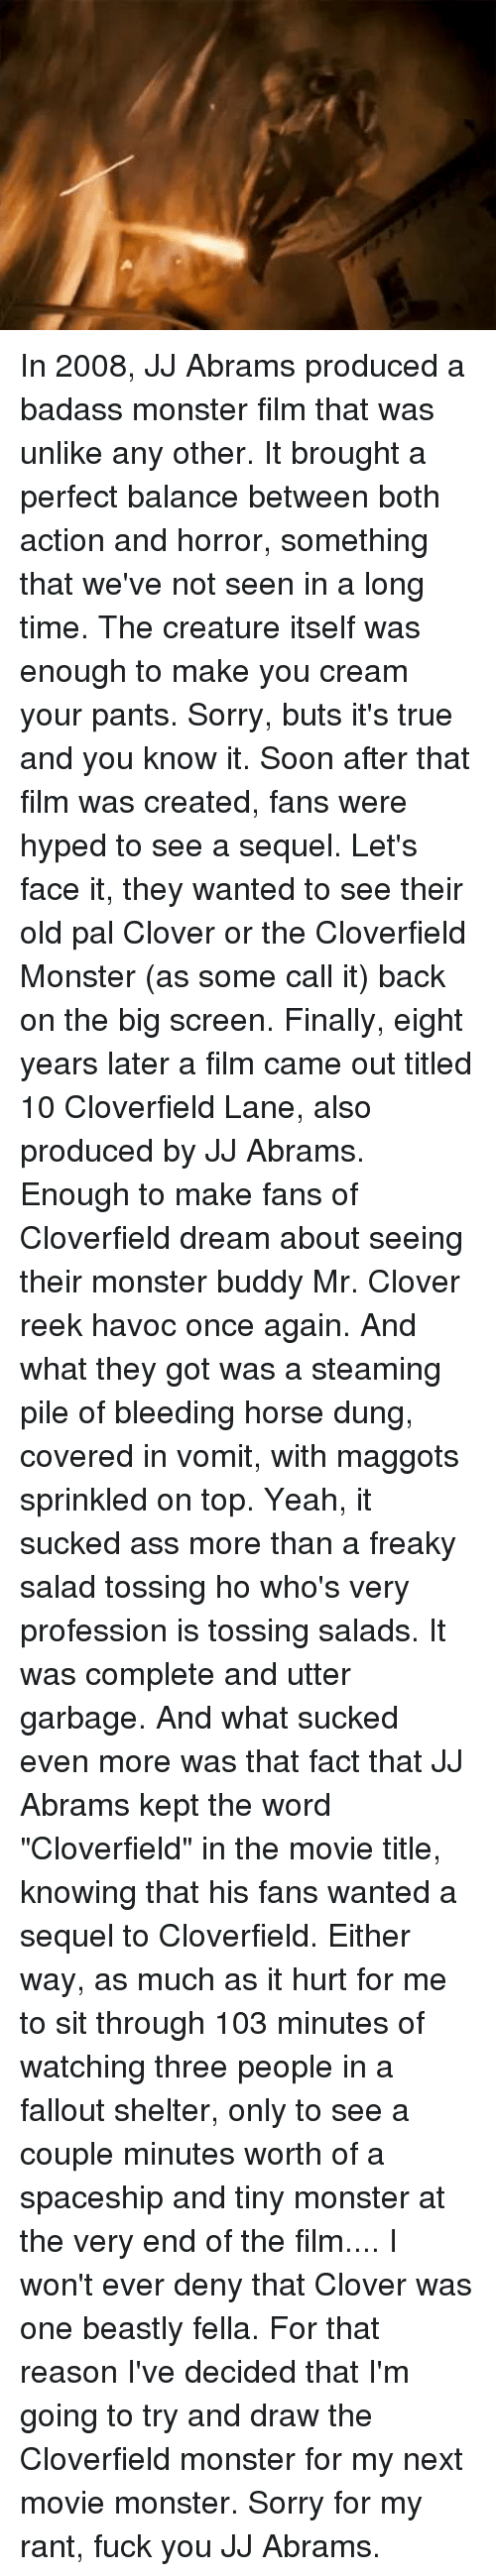 """cloverfield monster: In 2008, JJ Abrams produced a badass monster film that was unlike any other.  It brought a perfect balance between both action and horror, something that we've not seen in a long time.  The creature itself was enough to make you cream your pants.  Sorry, buts it's true and you know it.  Soon after that film was created, fans were hyped to see a sequel.  Let's face it, they wanted to see their old pal Clover or the Cloverfield Monster (as some call it) back on the big screen.  Finally, eight years later a film came out titled 10 Cloverfield Lane, also produced by JJ Abrams.  Enough to make fans of Cloverfield dream about seeing their monster buddy Mr. Clover reek havoc once again.  And what they got was a steaming pile of bleeding horse dung, covered in vomit, with maggots sprinkled on top.  Yeah, it sucked ass more than a freaky salad tossing ho who's very profession is tossing salads.  It was complete and utter garbage.  And what sucked even more was that fact that JJ Abrams kept the word """"Cloverfield"""" in the movie title, knowing that his fans wanted a sequel to Cloverfield.  Either way, as much as it hurt for me to sit through 103 minutes of watching three people in a fallout shelter, only to see a couple minutes worth of a spaceship and tiny monster at the very end of the film.... I won't ever deny that Clover was one beastly fella.  For that reason I've decided that I'm going to try and draw the Cloverfield monster for my next movie monster.   Sorry for my rant, fuck you JJ Abrams."""